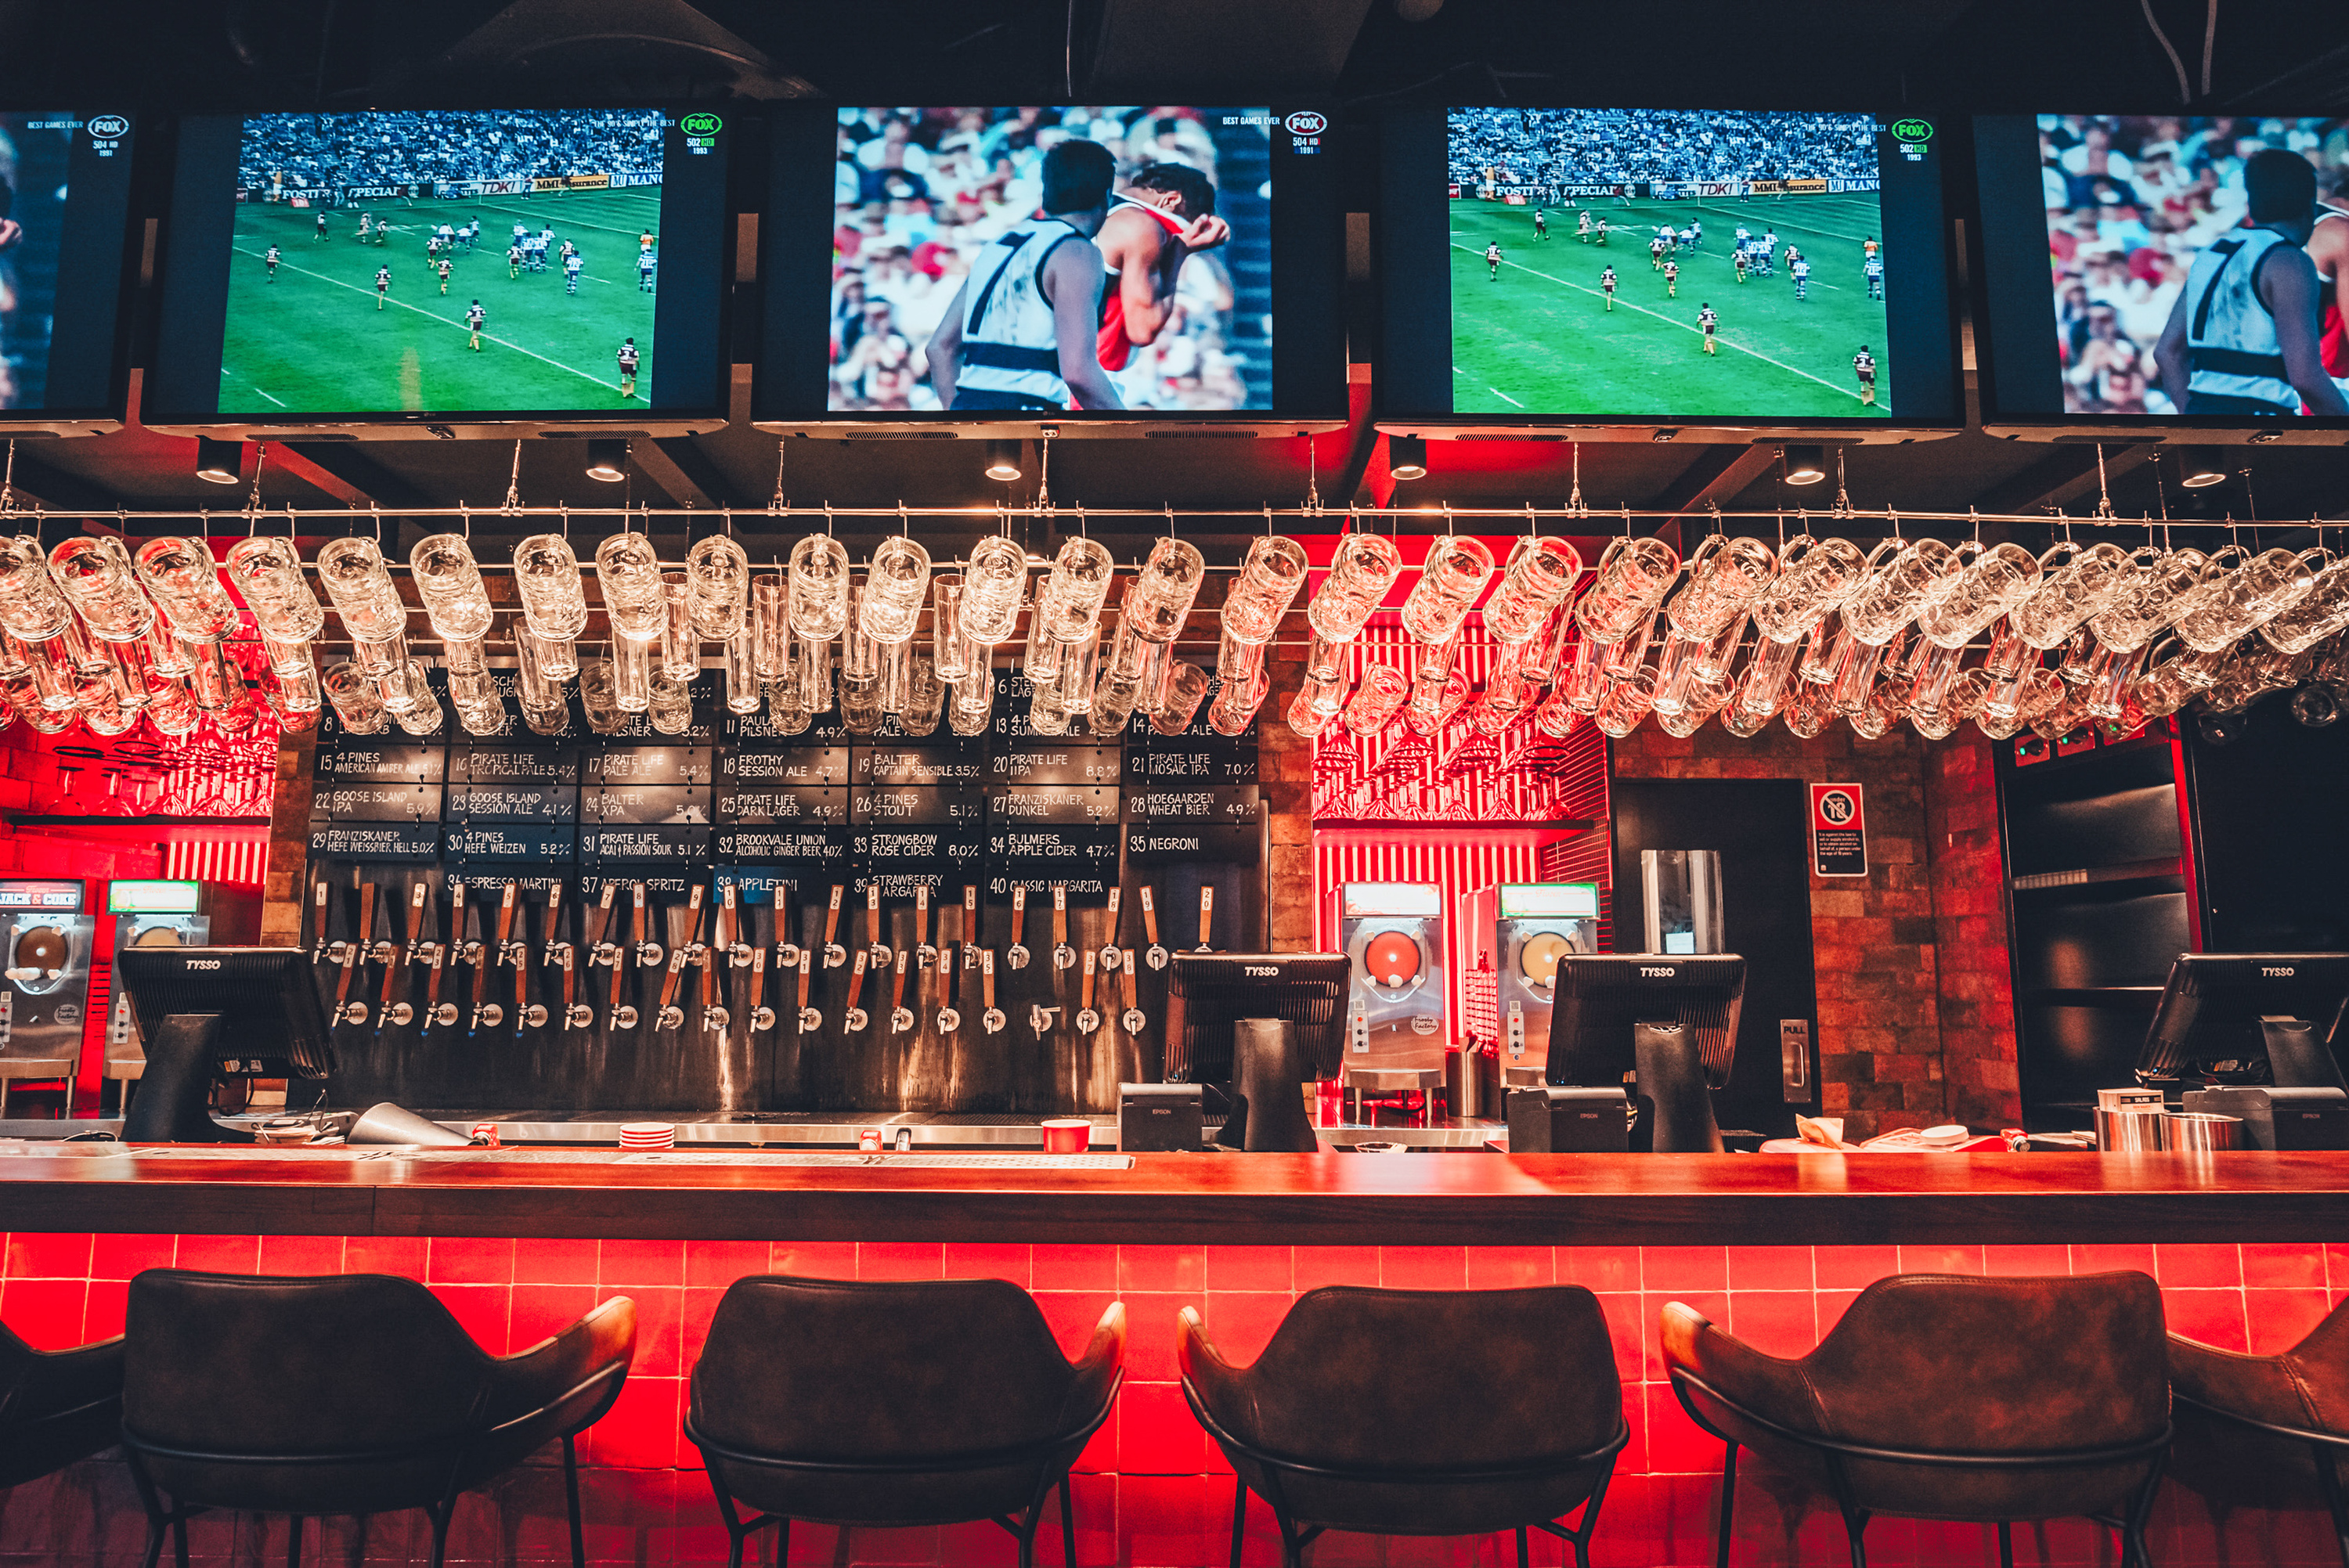 A red-lit bar iwth glasses hanging overhead and sports on multiple screens